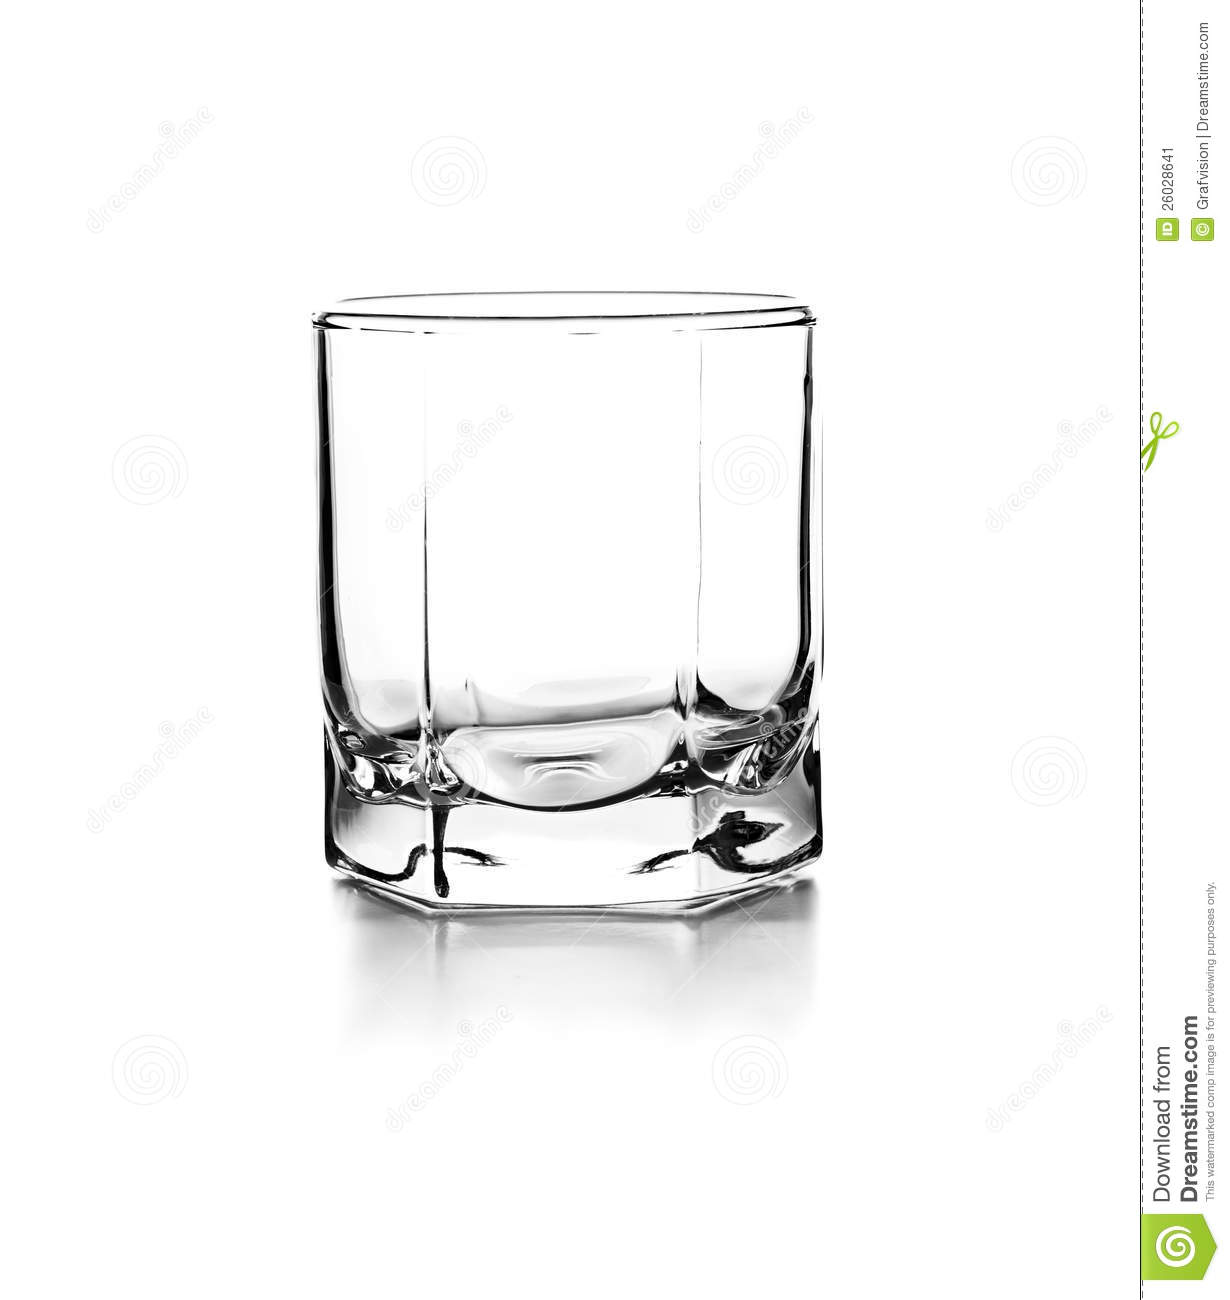 More similar stock images of ` Empty glass for whiskey `